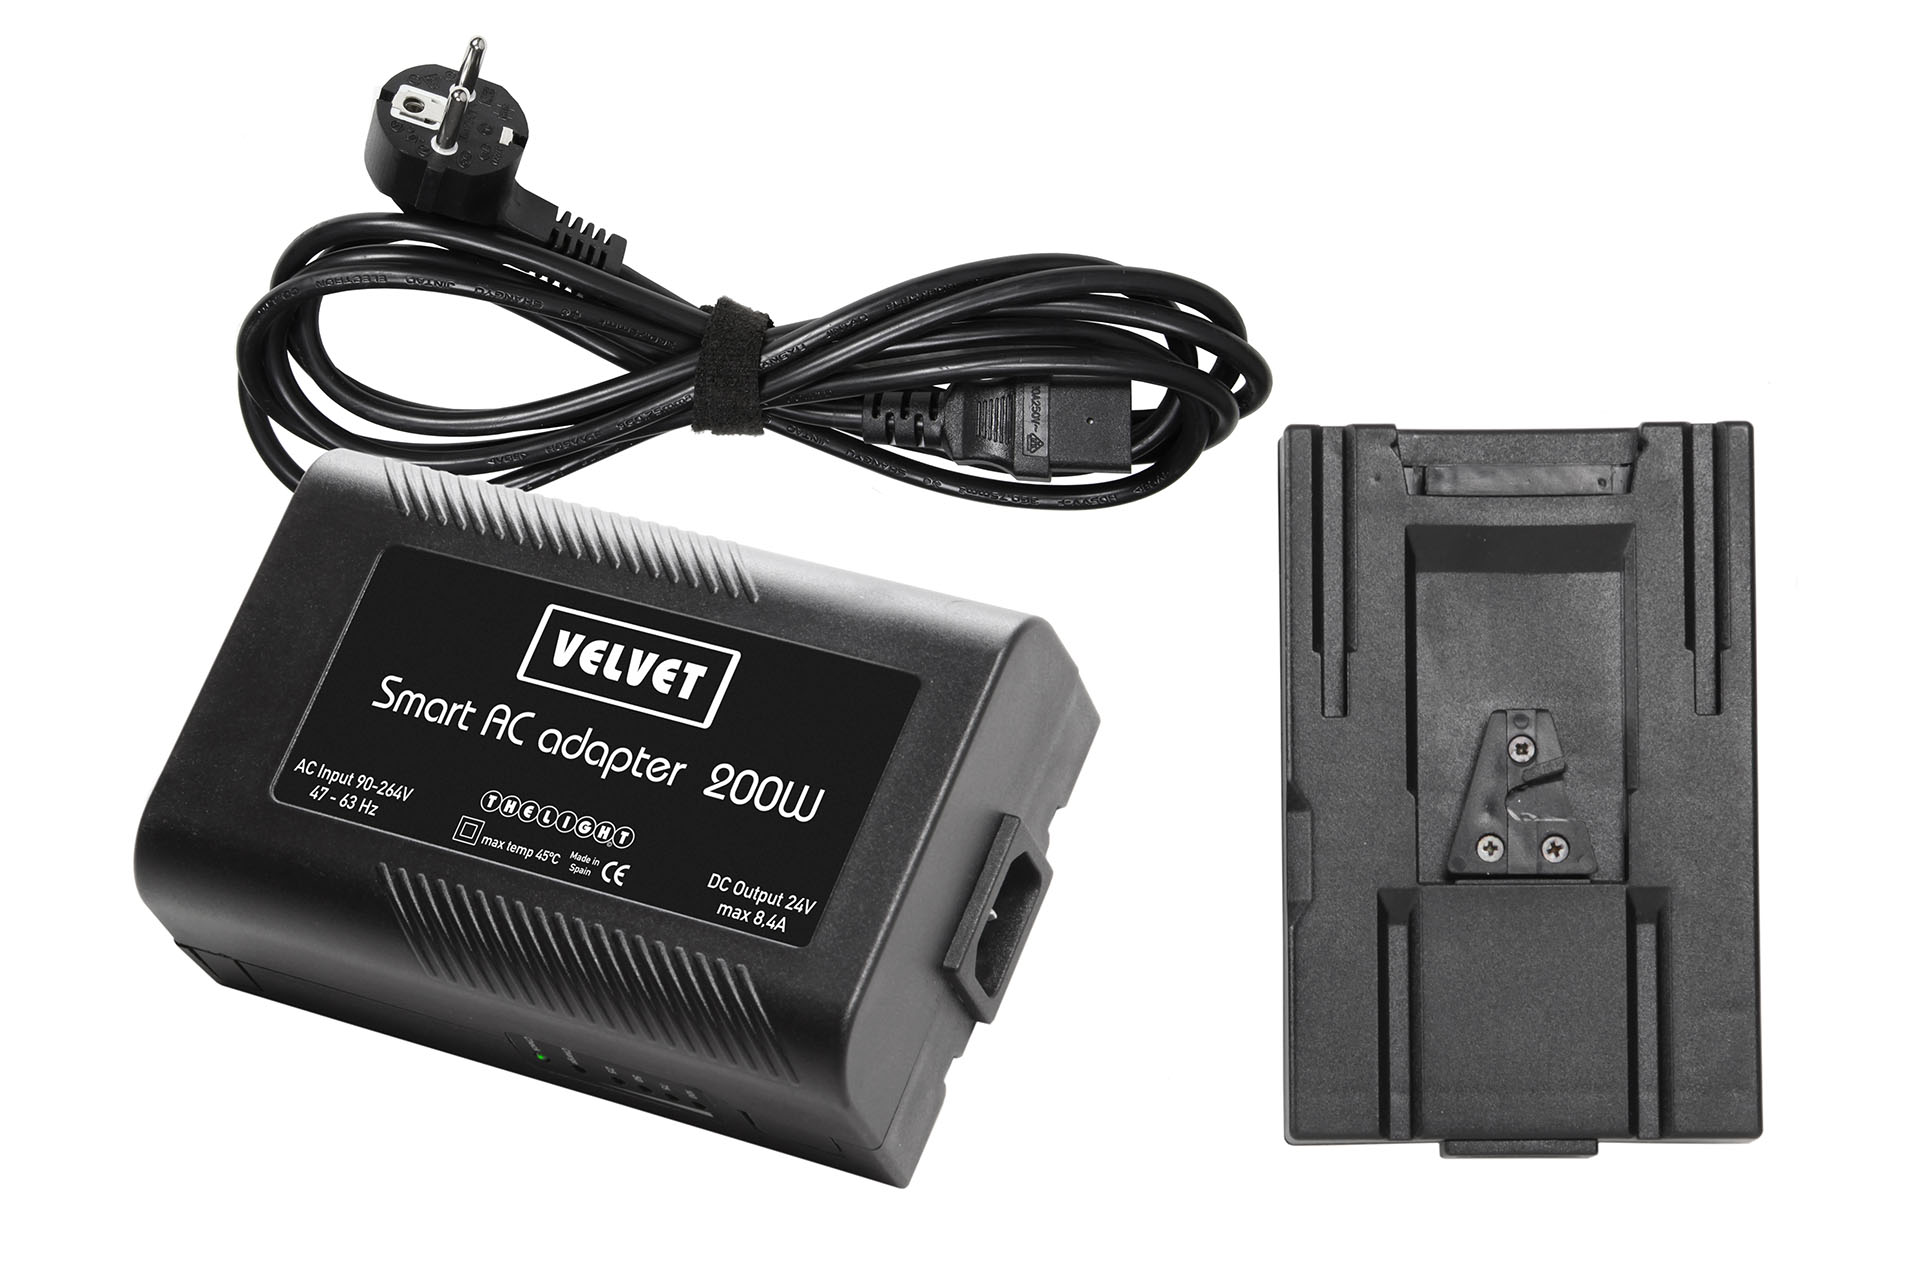 VELVET MINI 1 Smart Vlock AC adapter